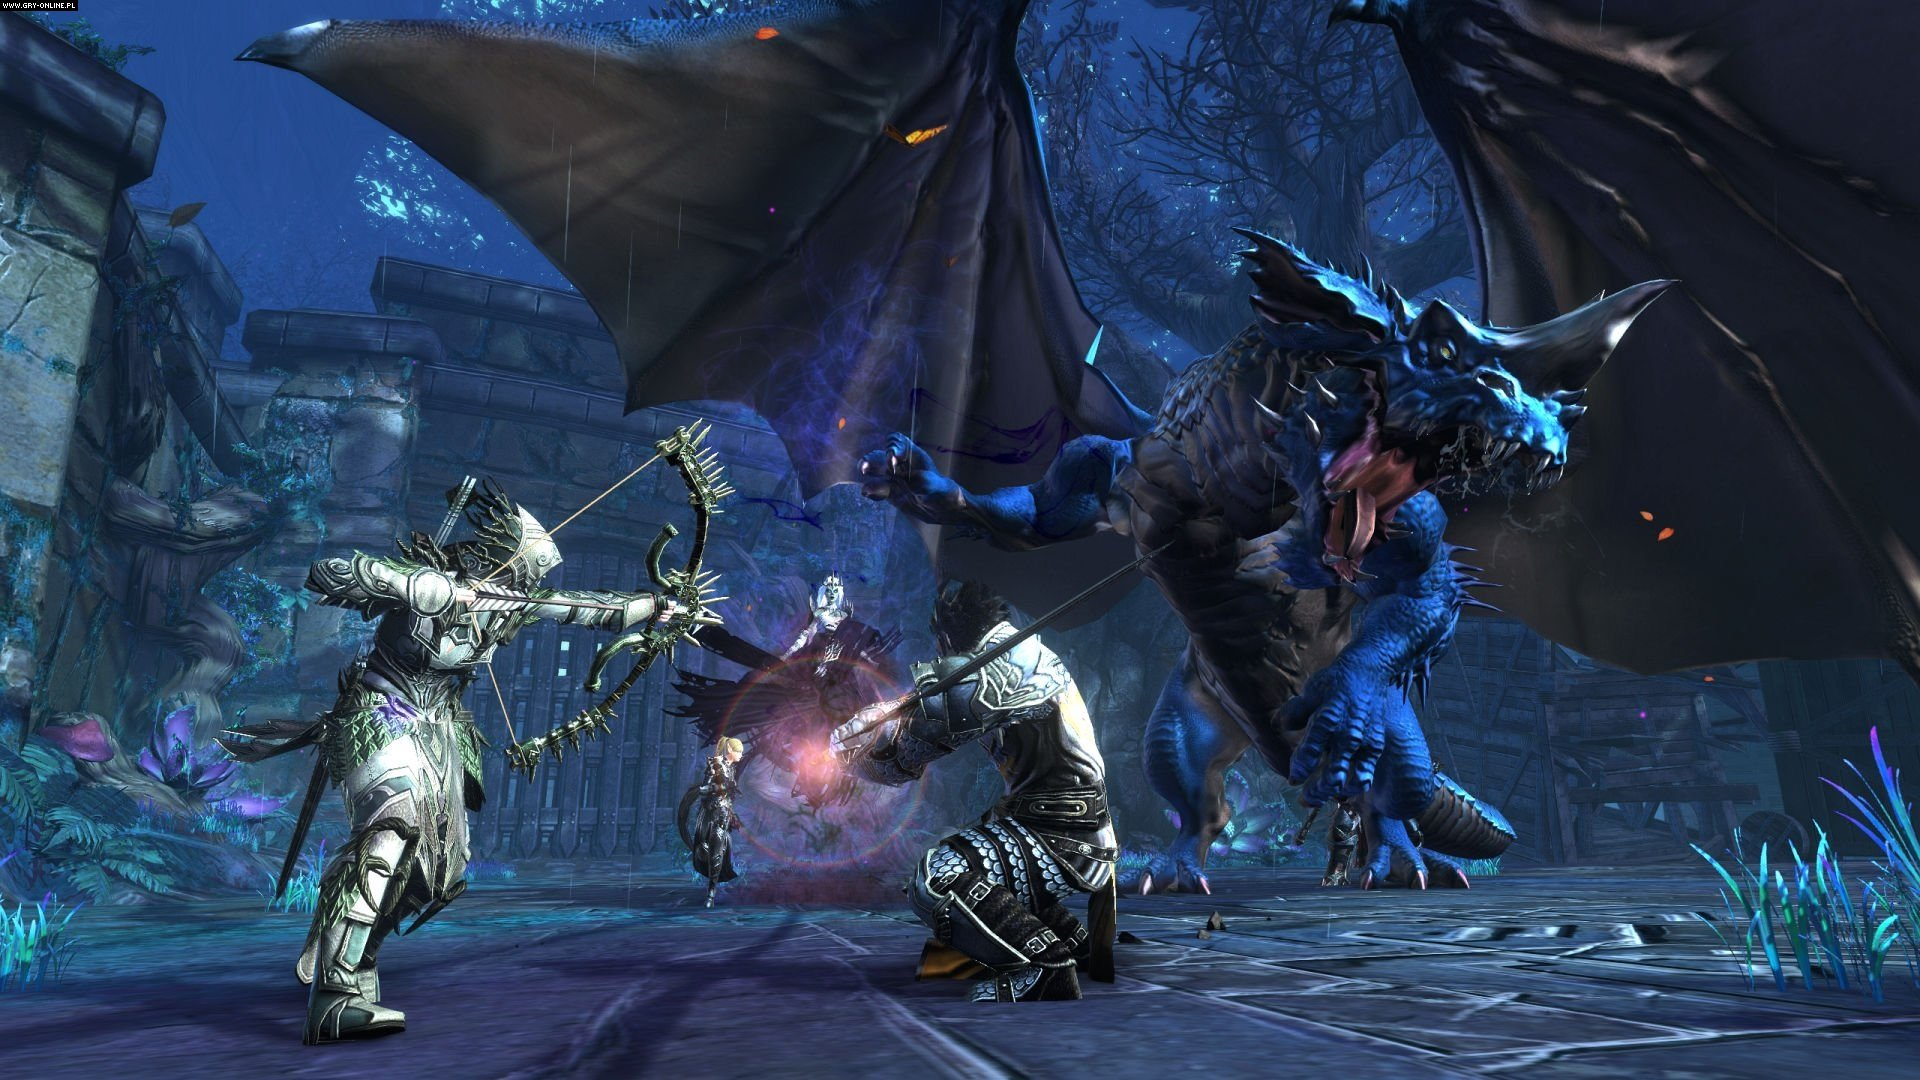 Neverwinter PC Games Image 16/327, Cryptic Studios, Perfect World Entertainment